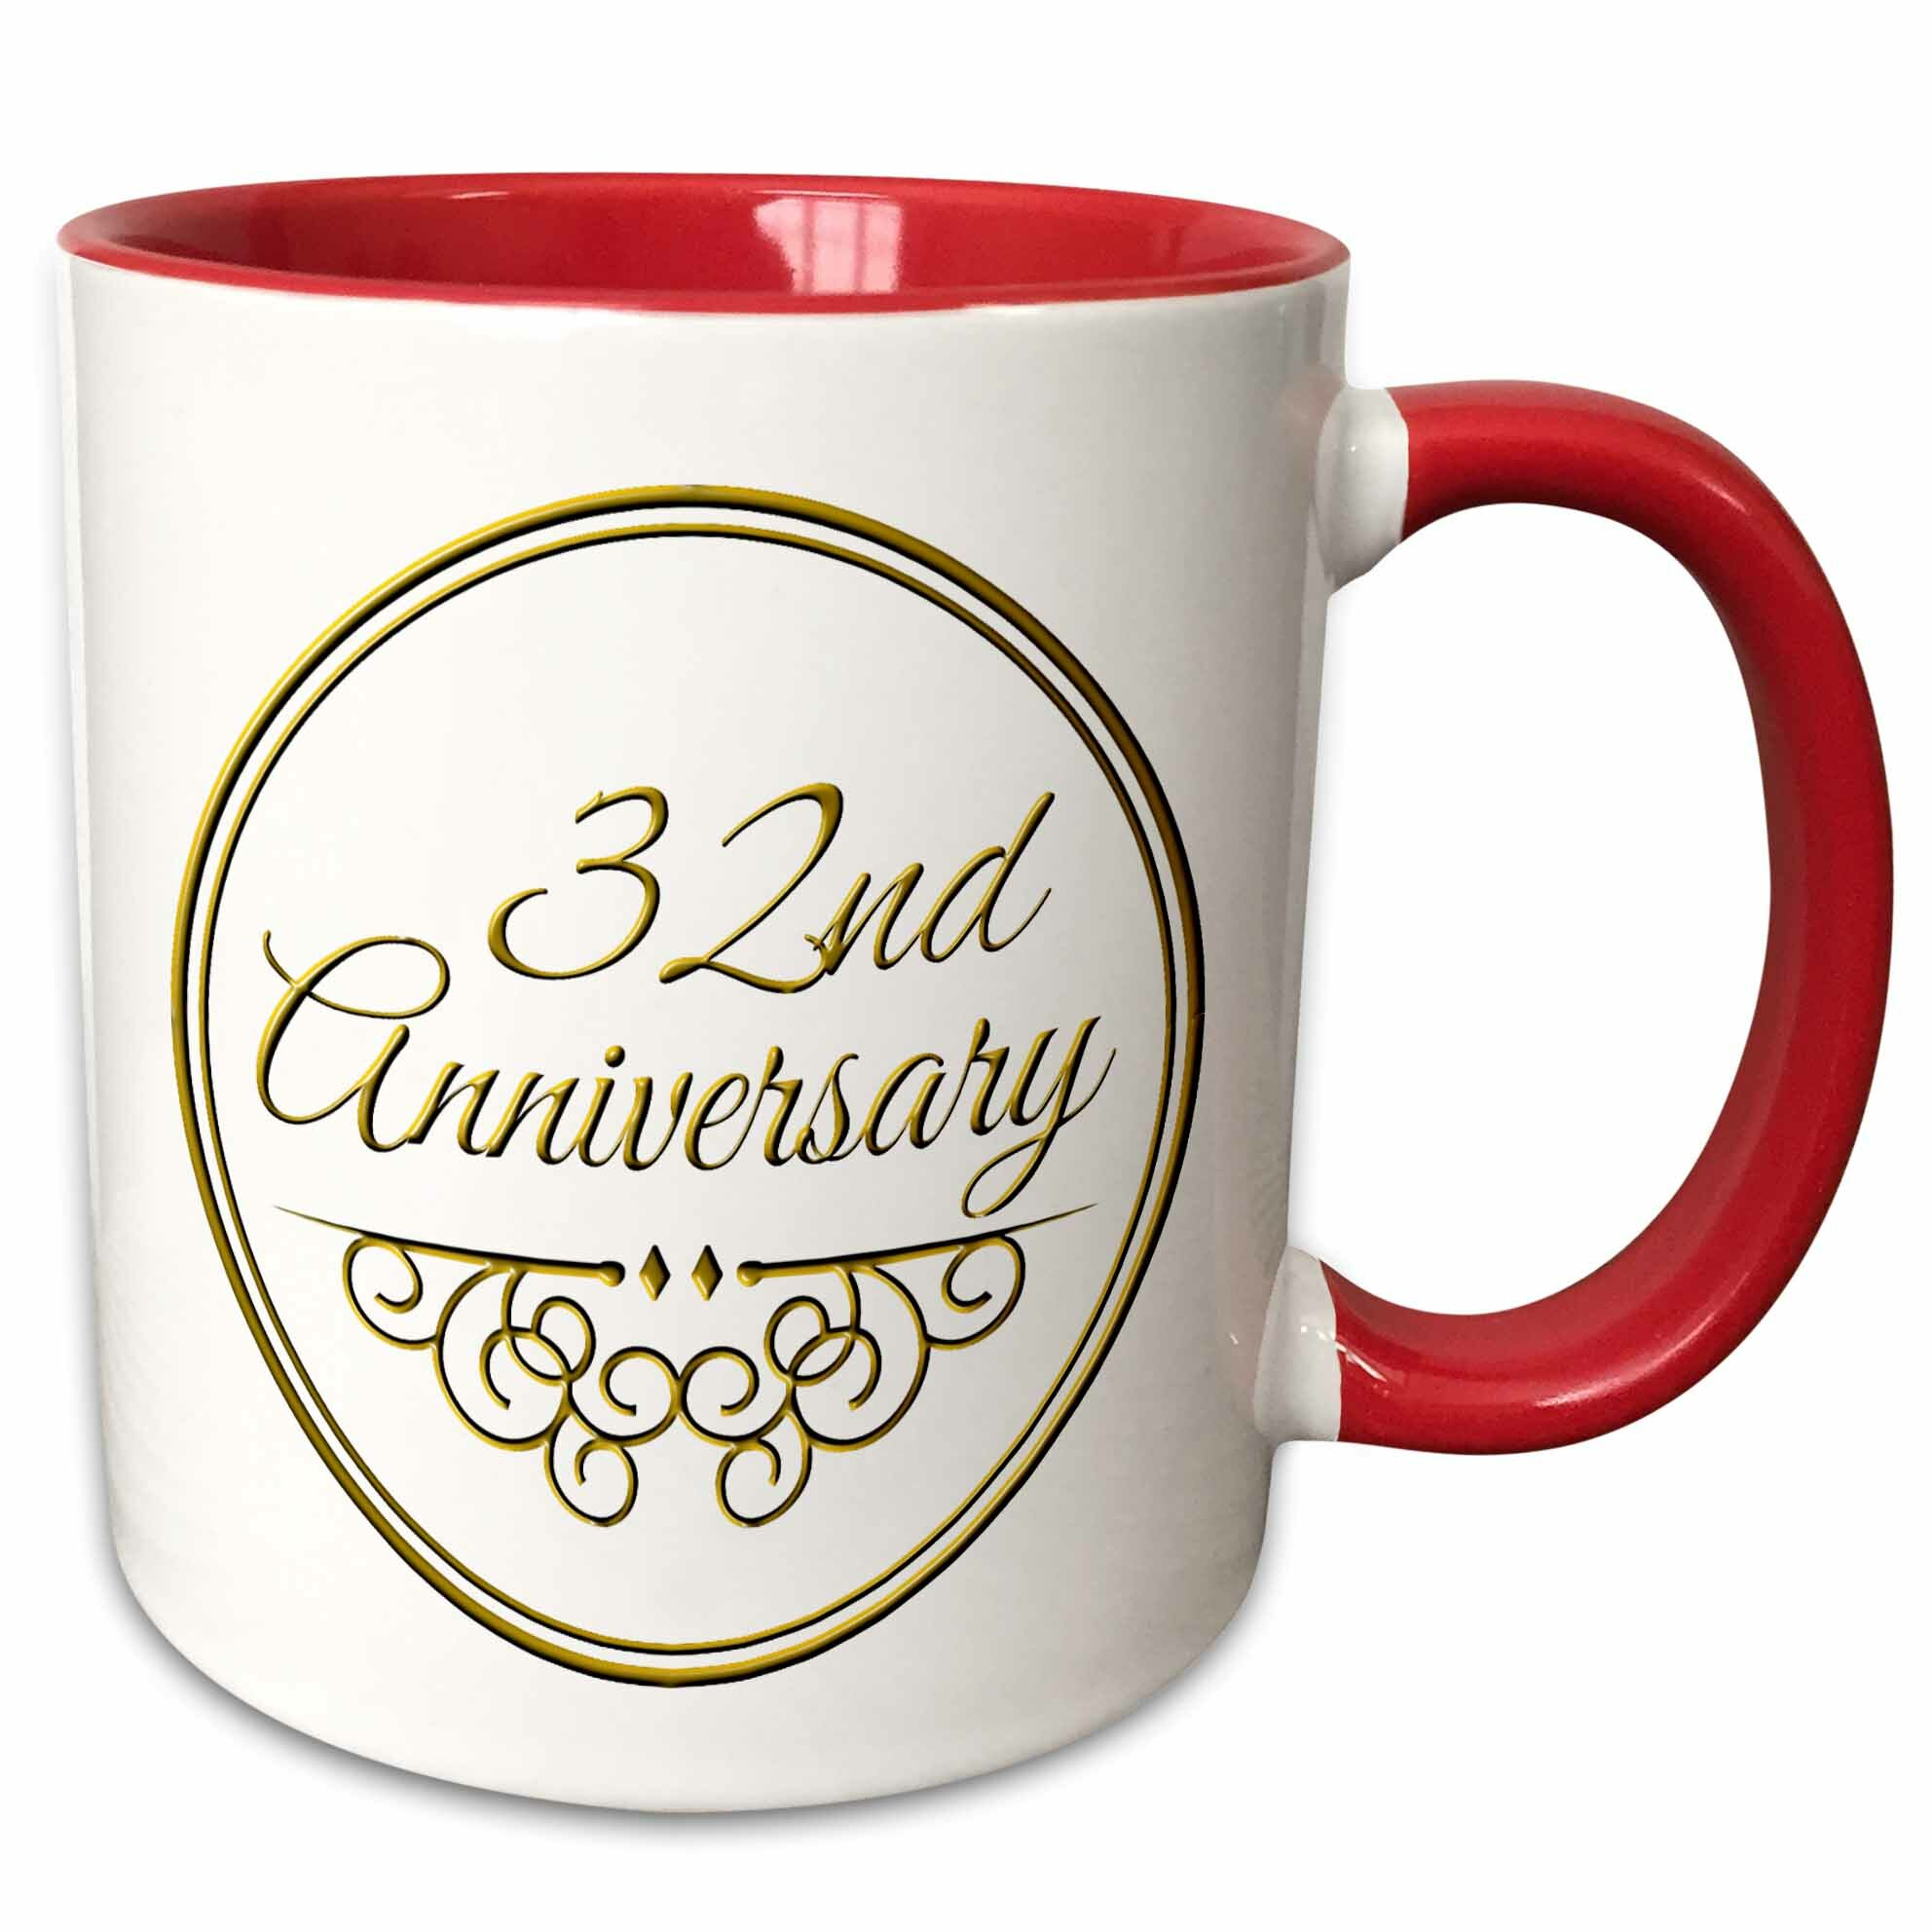 The Party Aisle 32nd Anniversary Gift Text For Celebrating Wedding Anniversaries 32 Years Married Together Coffee Mug Wayfair